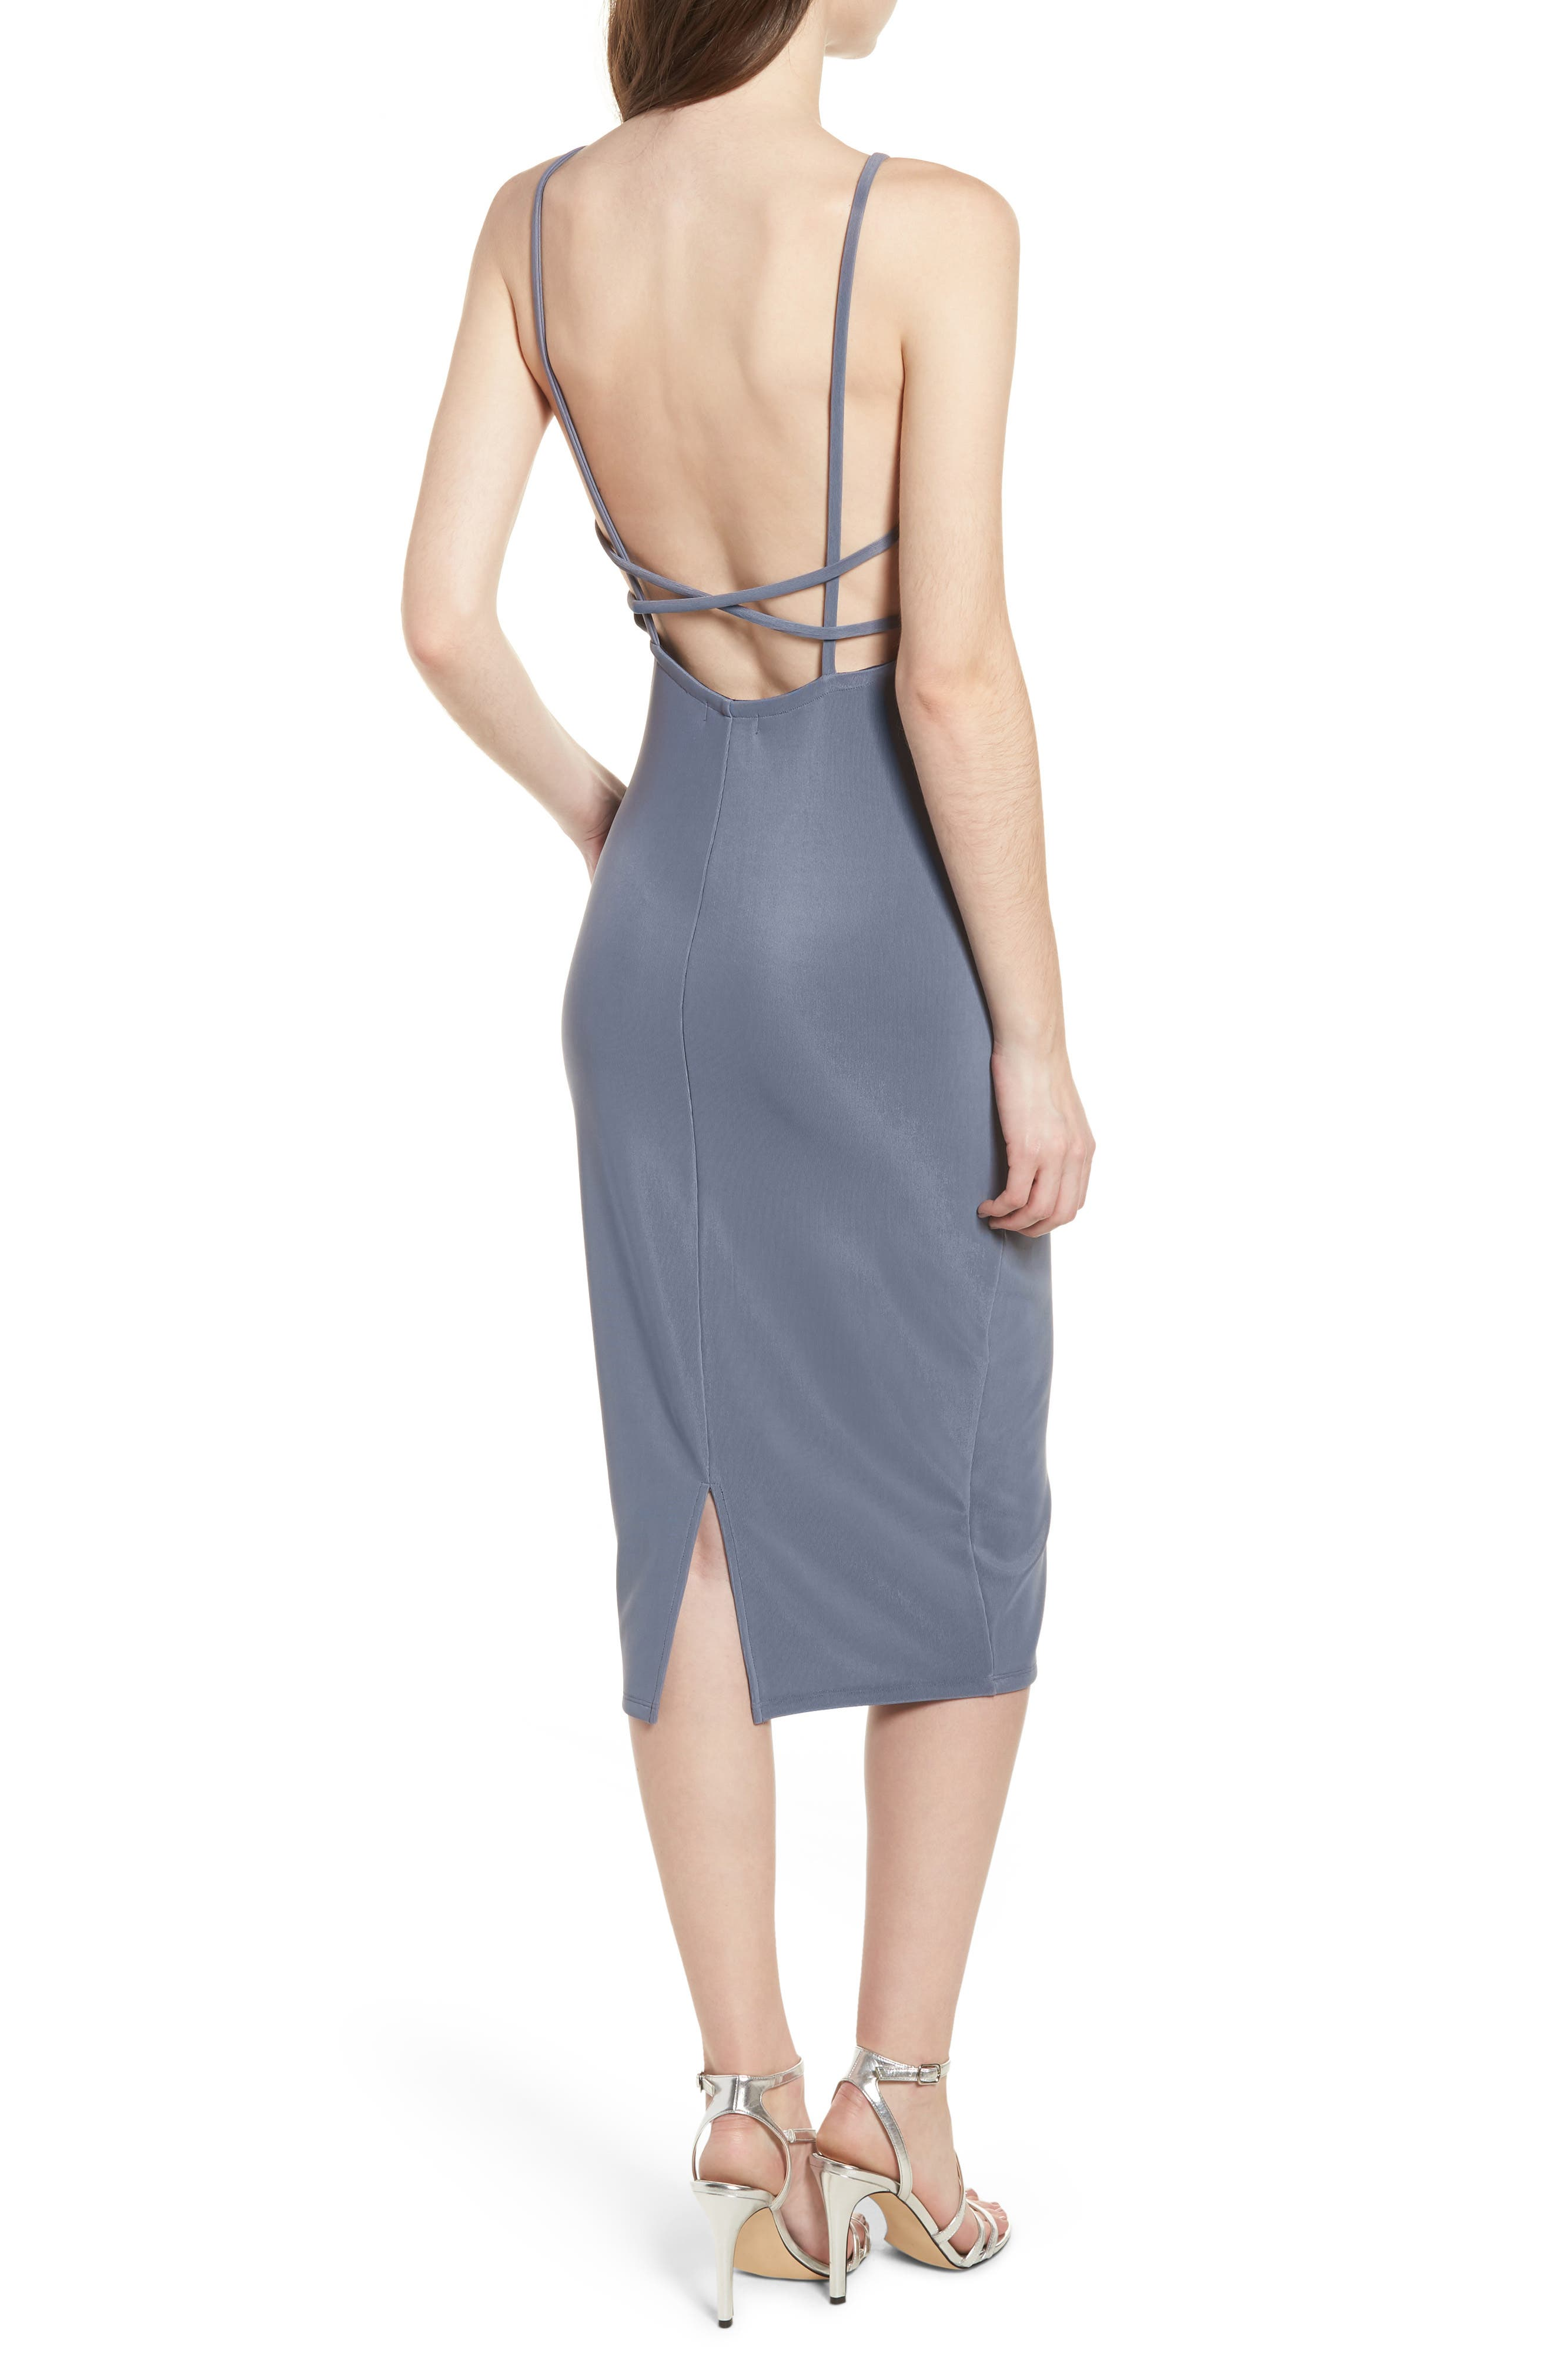 Strappy Bodycon Dress,                             Alternate thumbnail 2, color,                             GREY GRISAILLE